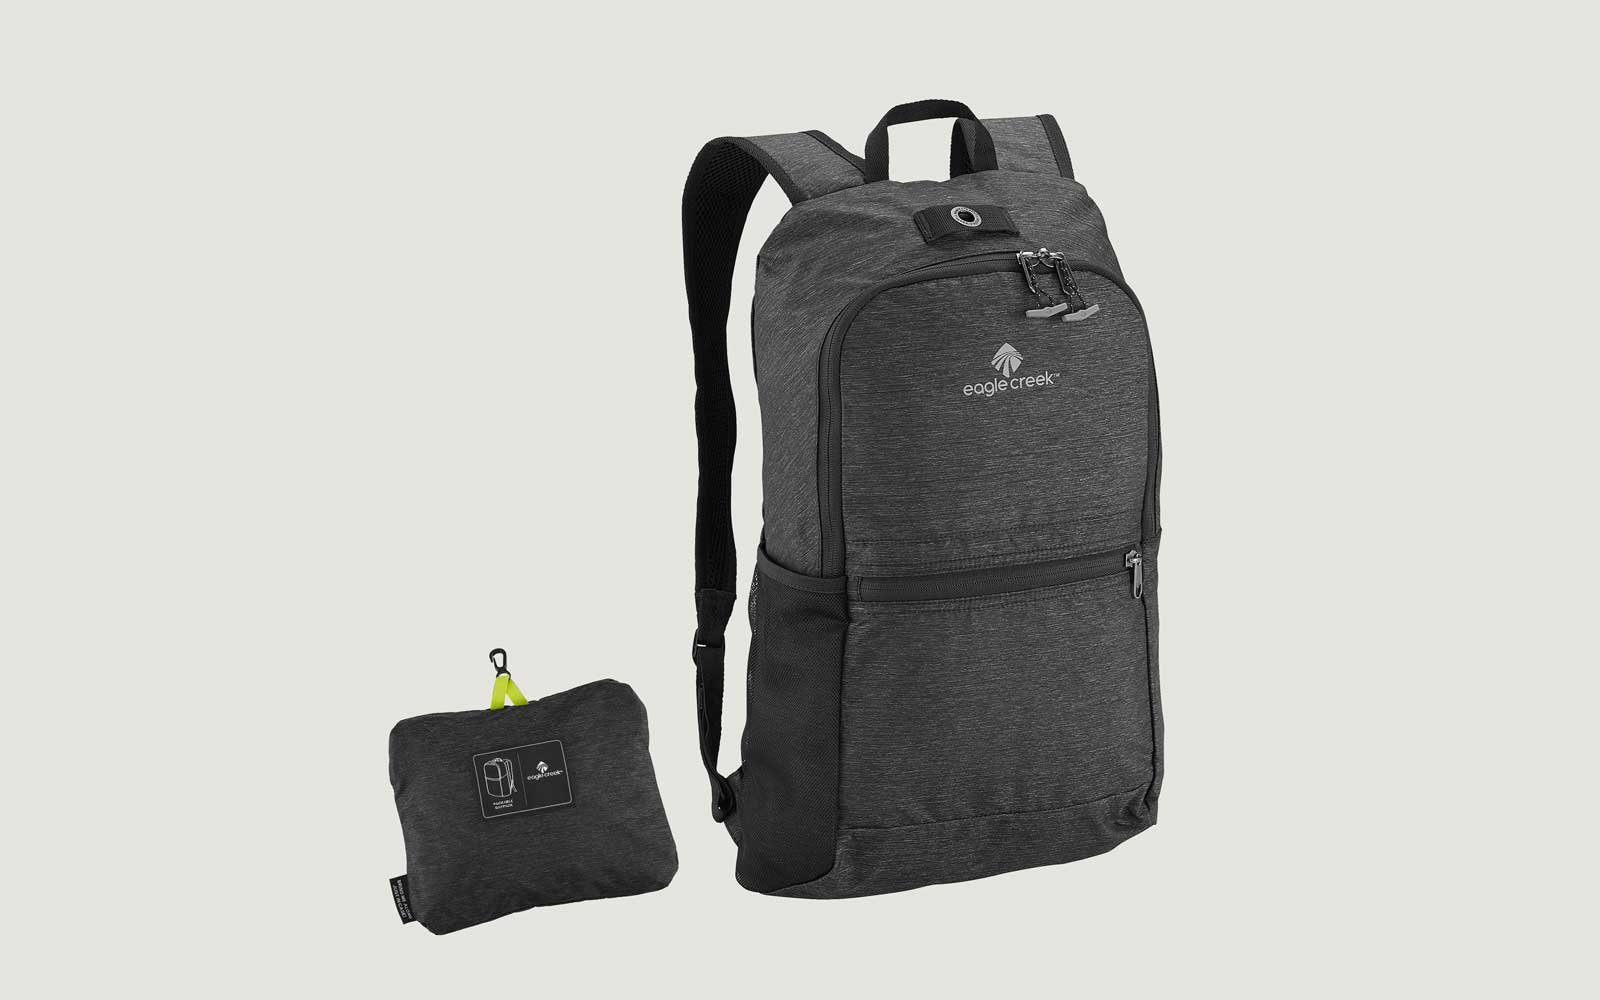 75d92effcd70 The 11 Best Packable Backpacks for Travelers